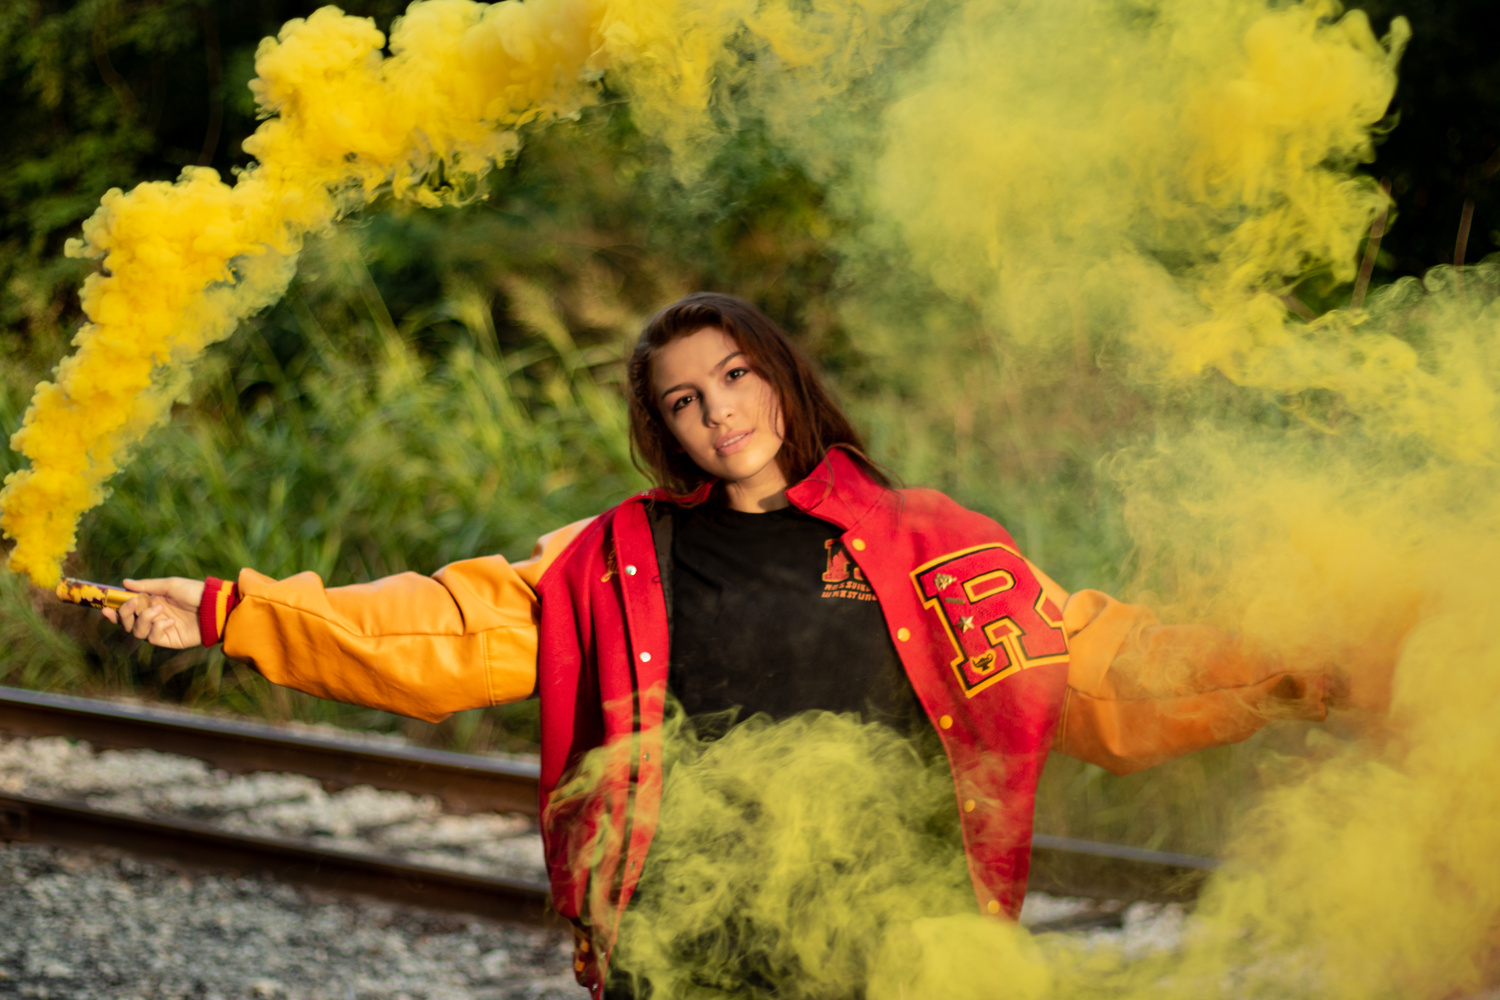 Yellow Smoke by Tariq Yunis